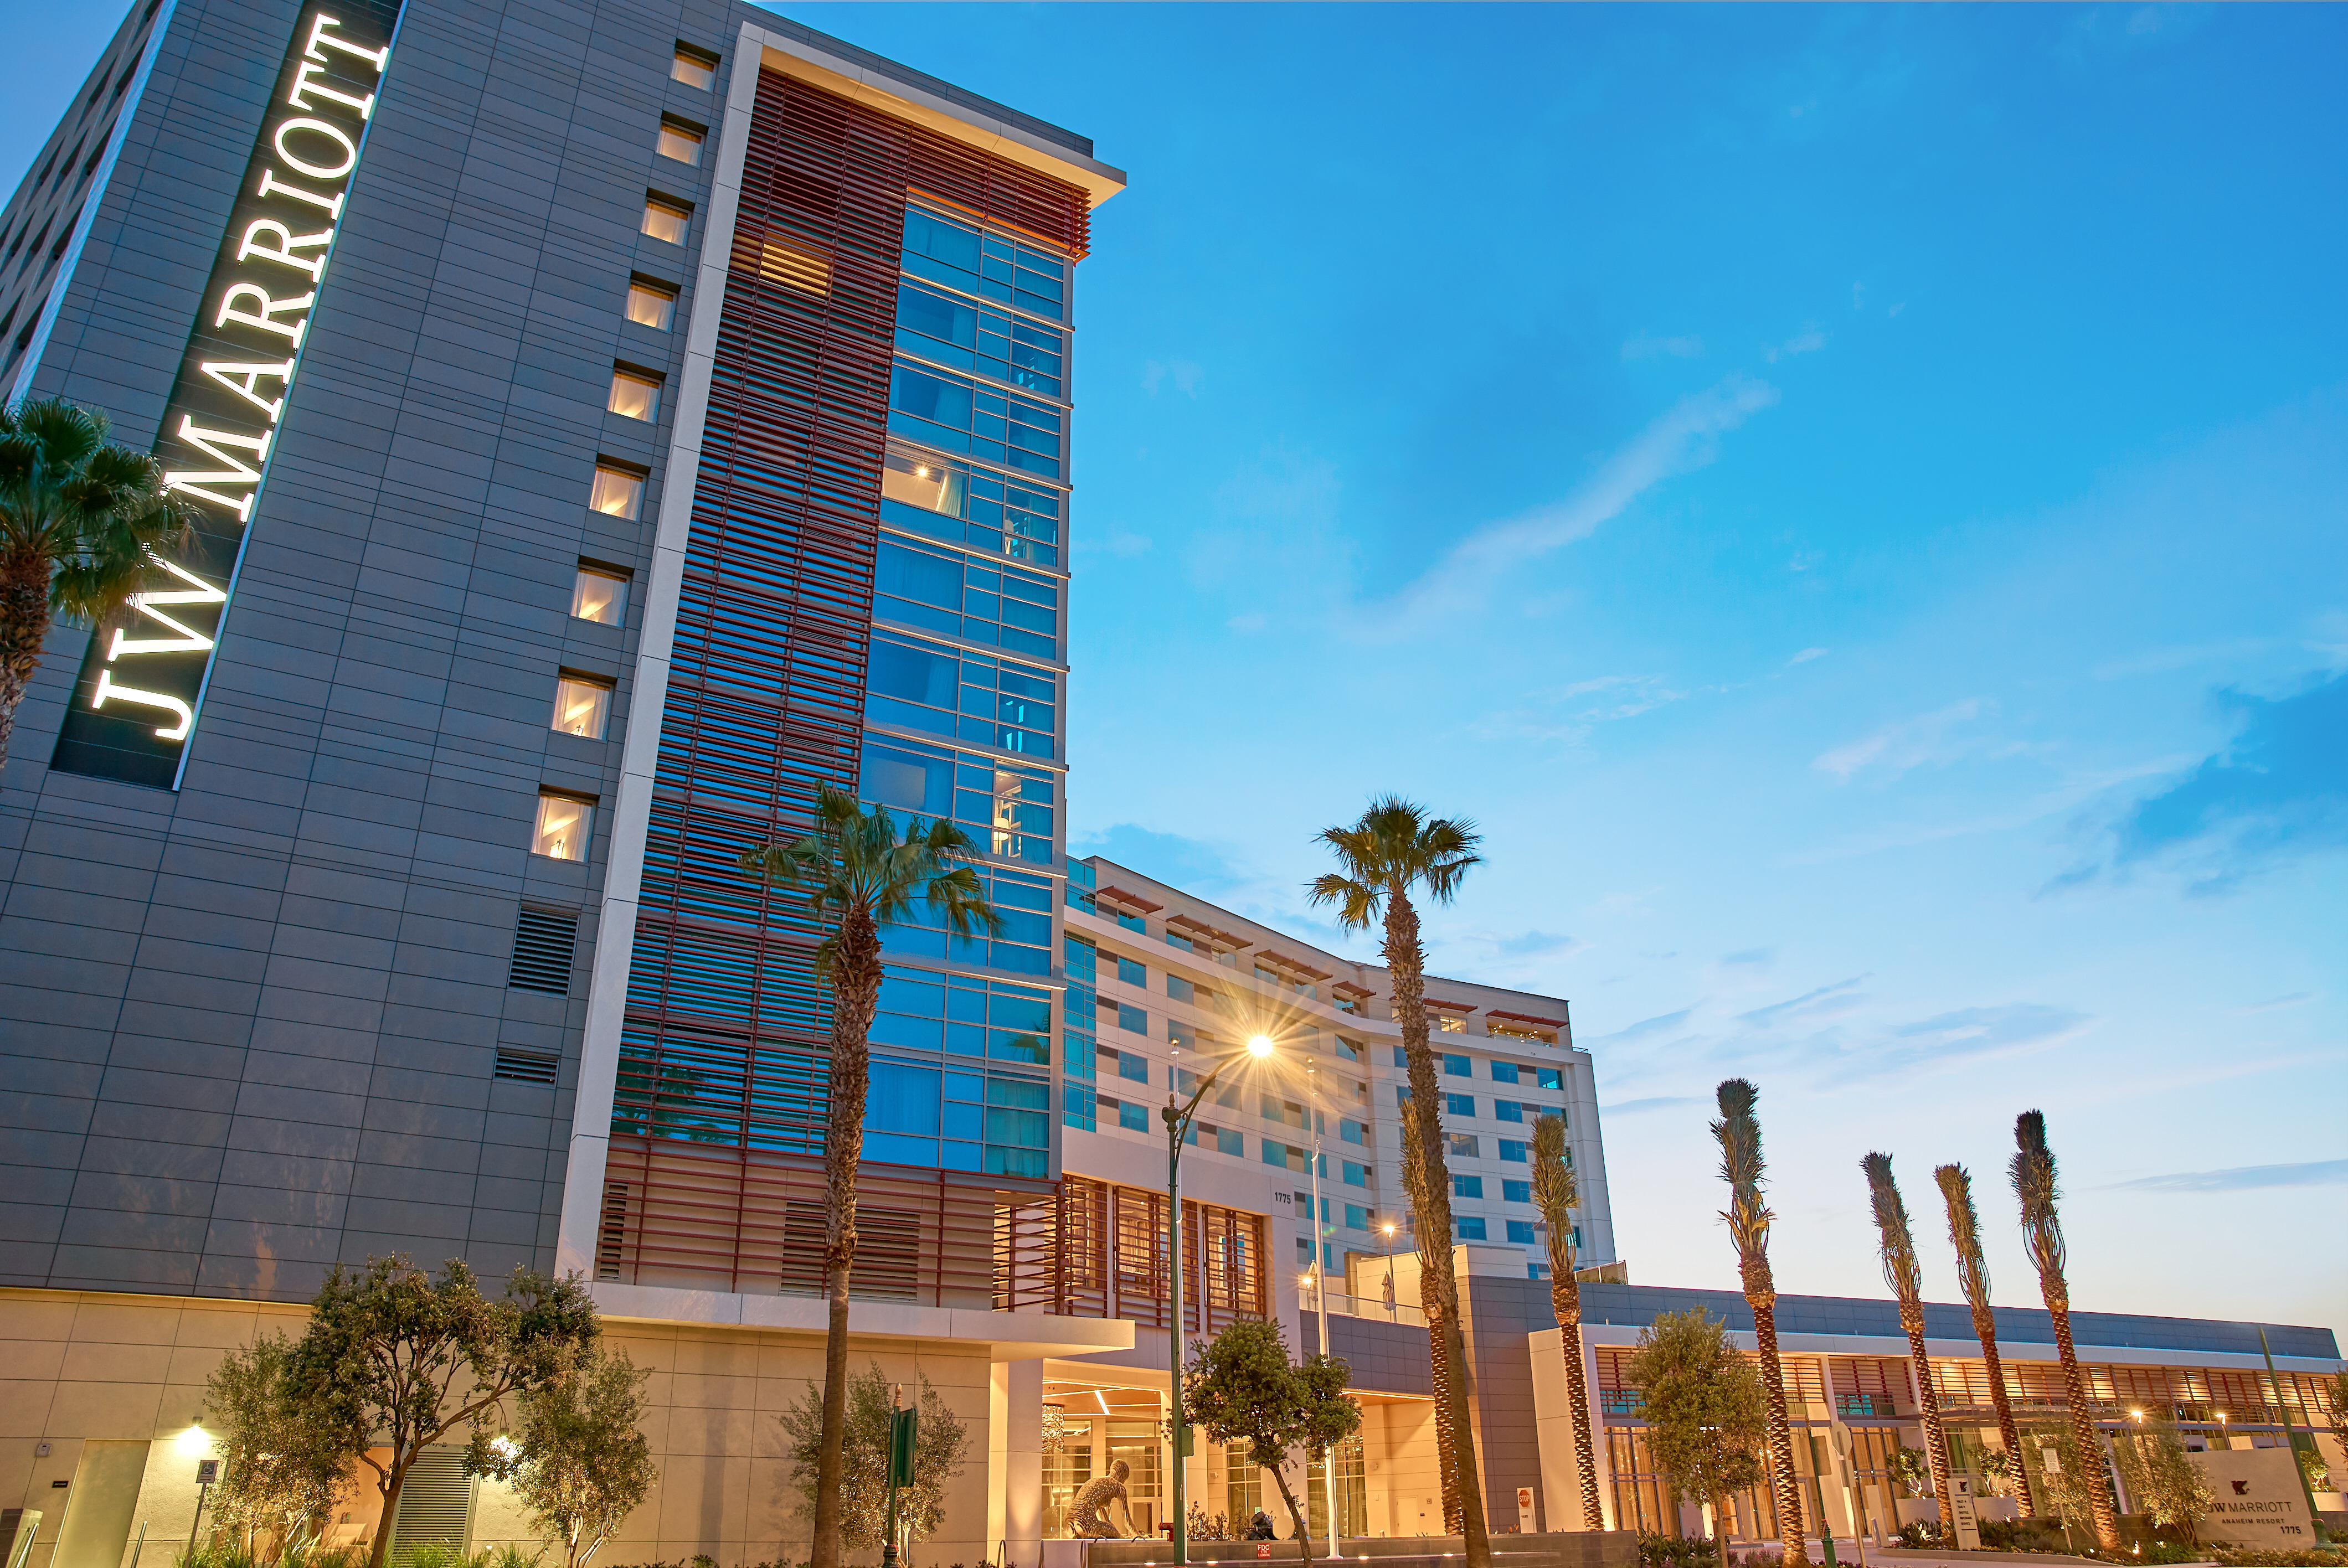 JW Marriott Anaheim Resort Hotel View. Photography, film and 3D by: Lions And Legacy